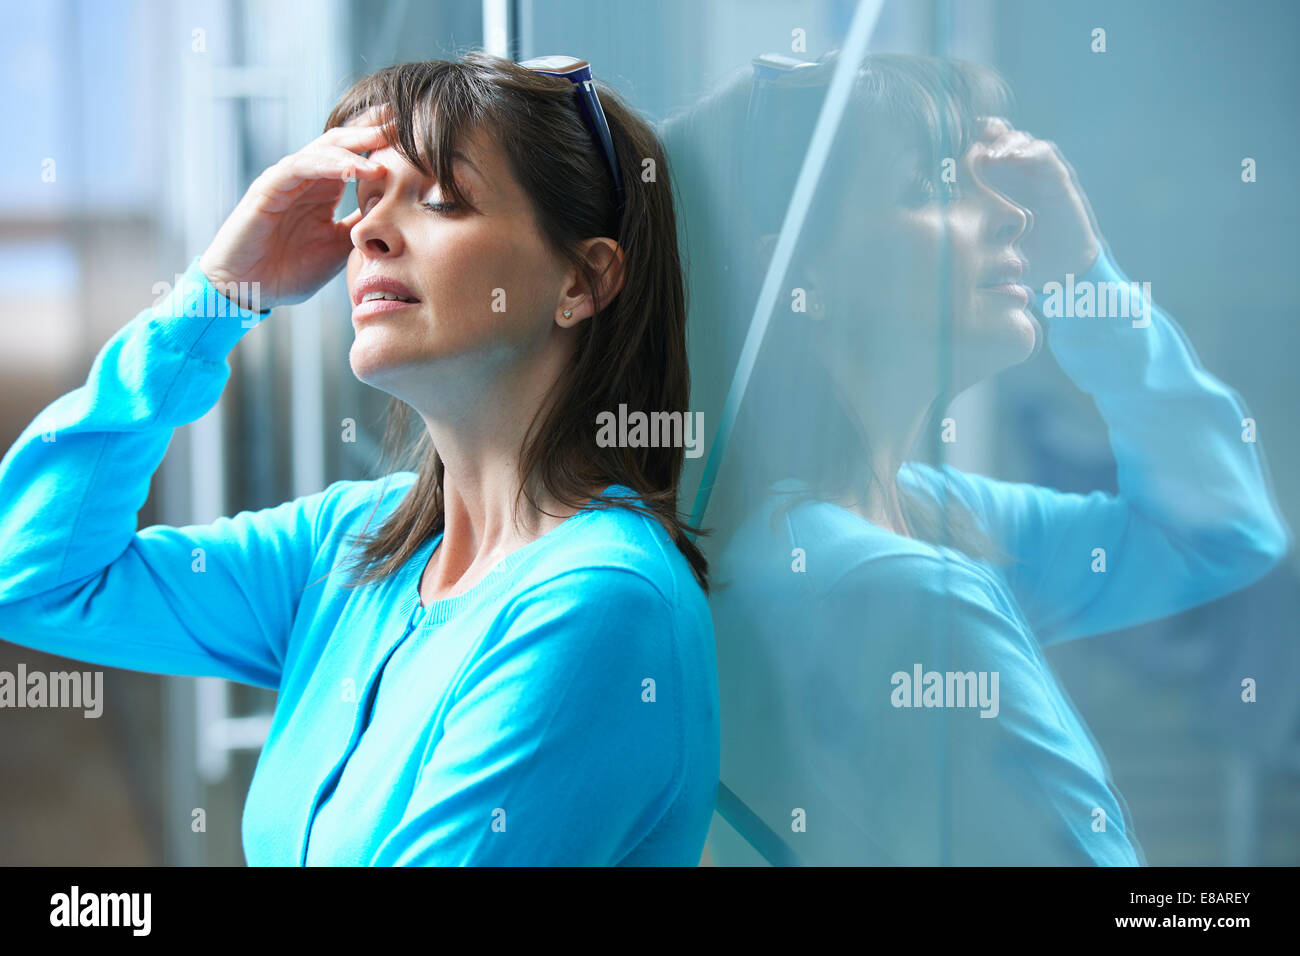 Mature businesswoman leaning against glass wall in office with hand on face - Stock Image